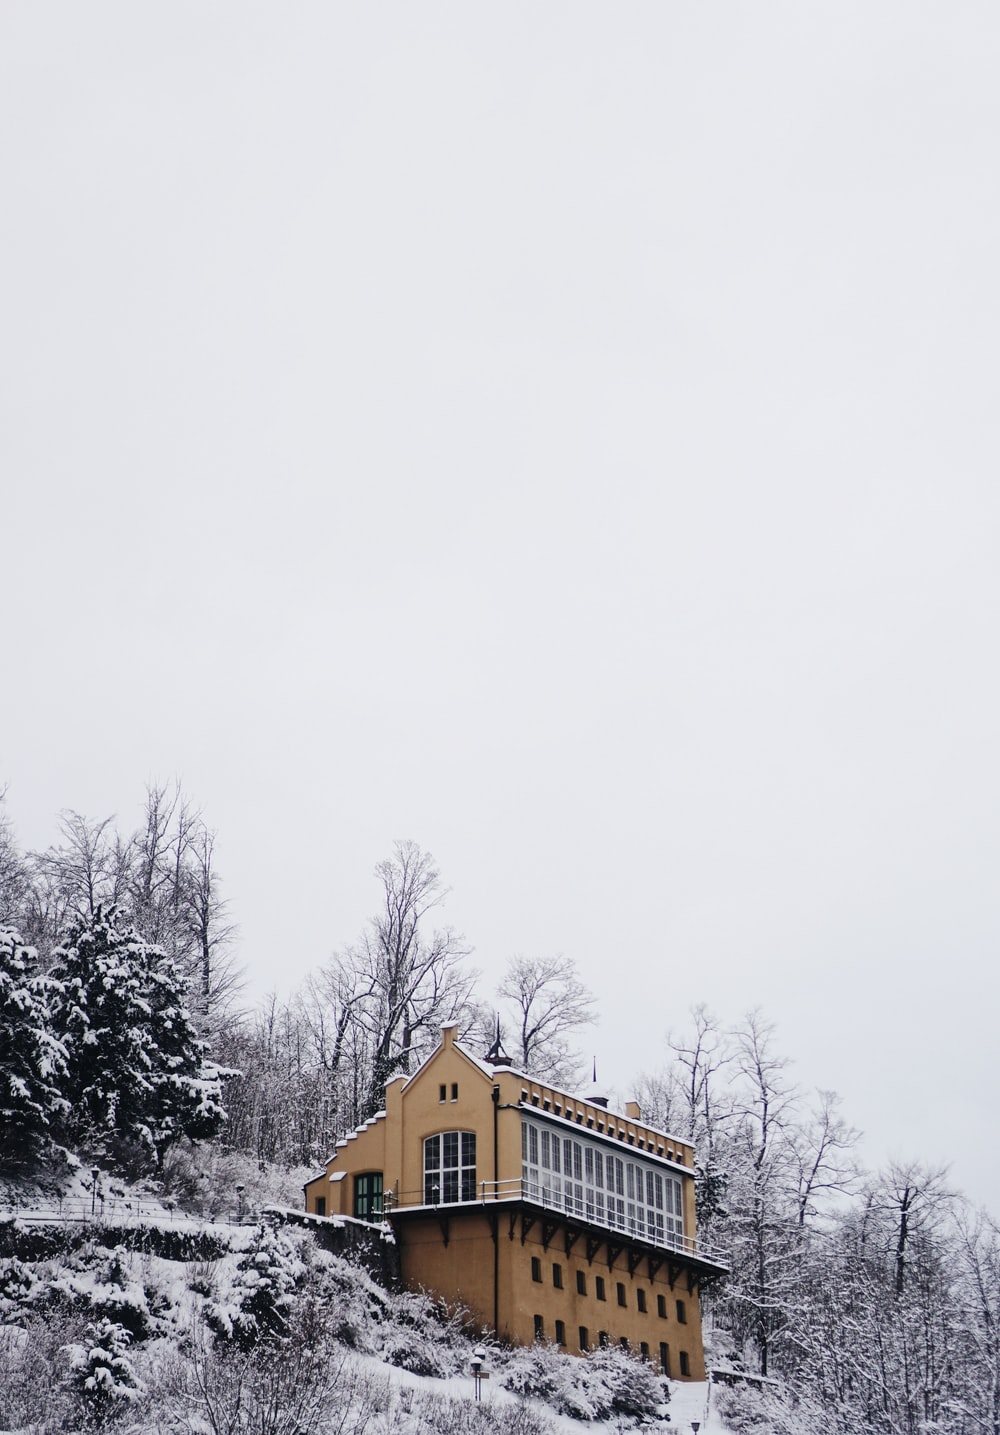 brown concrete building at winter